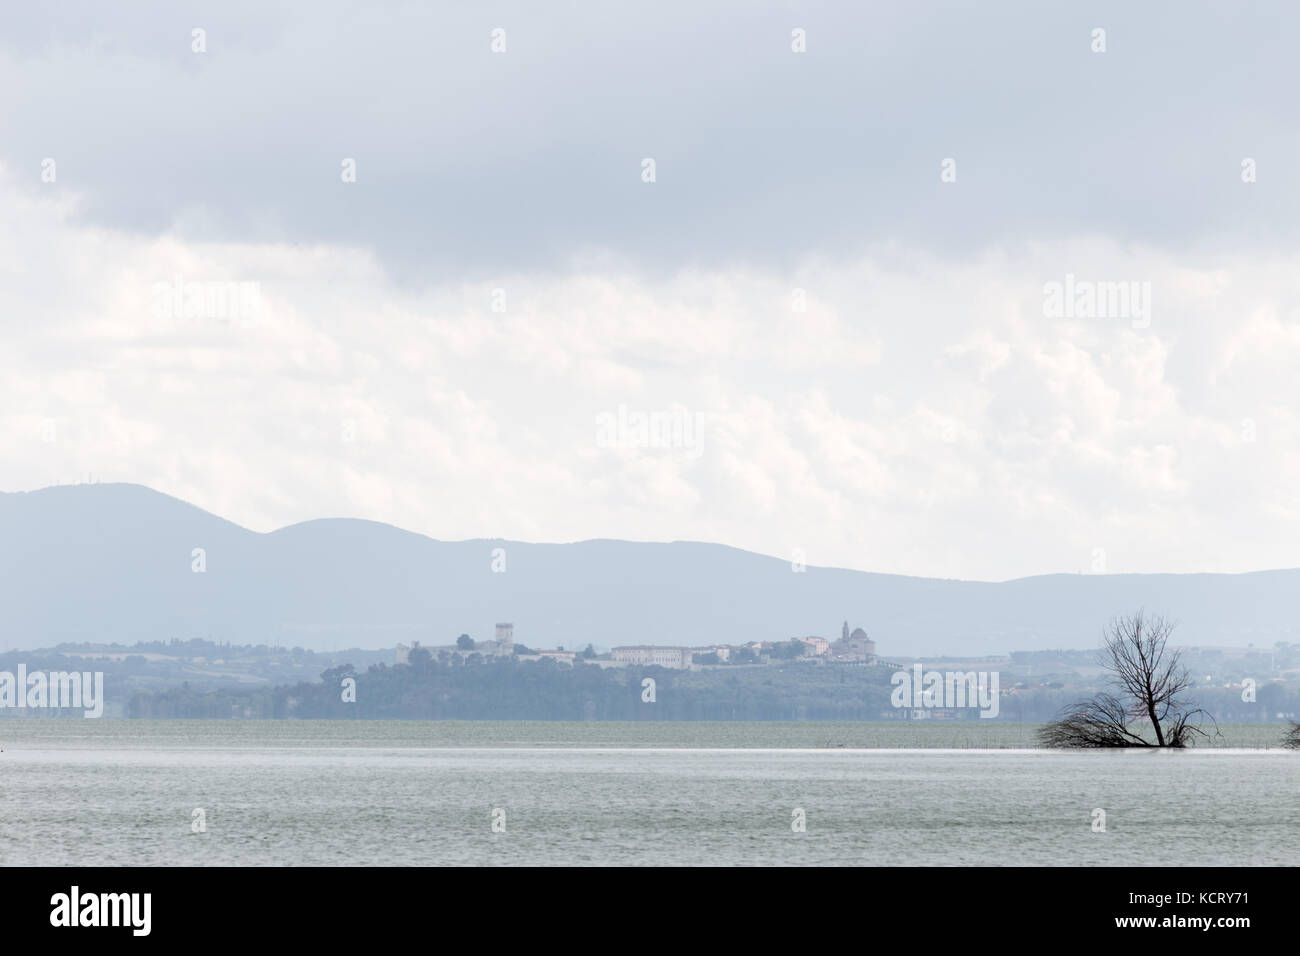 View of Castiglione del Lago town (Umbria, Italy), with Trasimeno lake and trees in the foreground Stock Photo